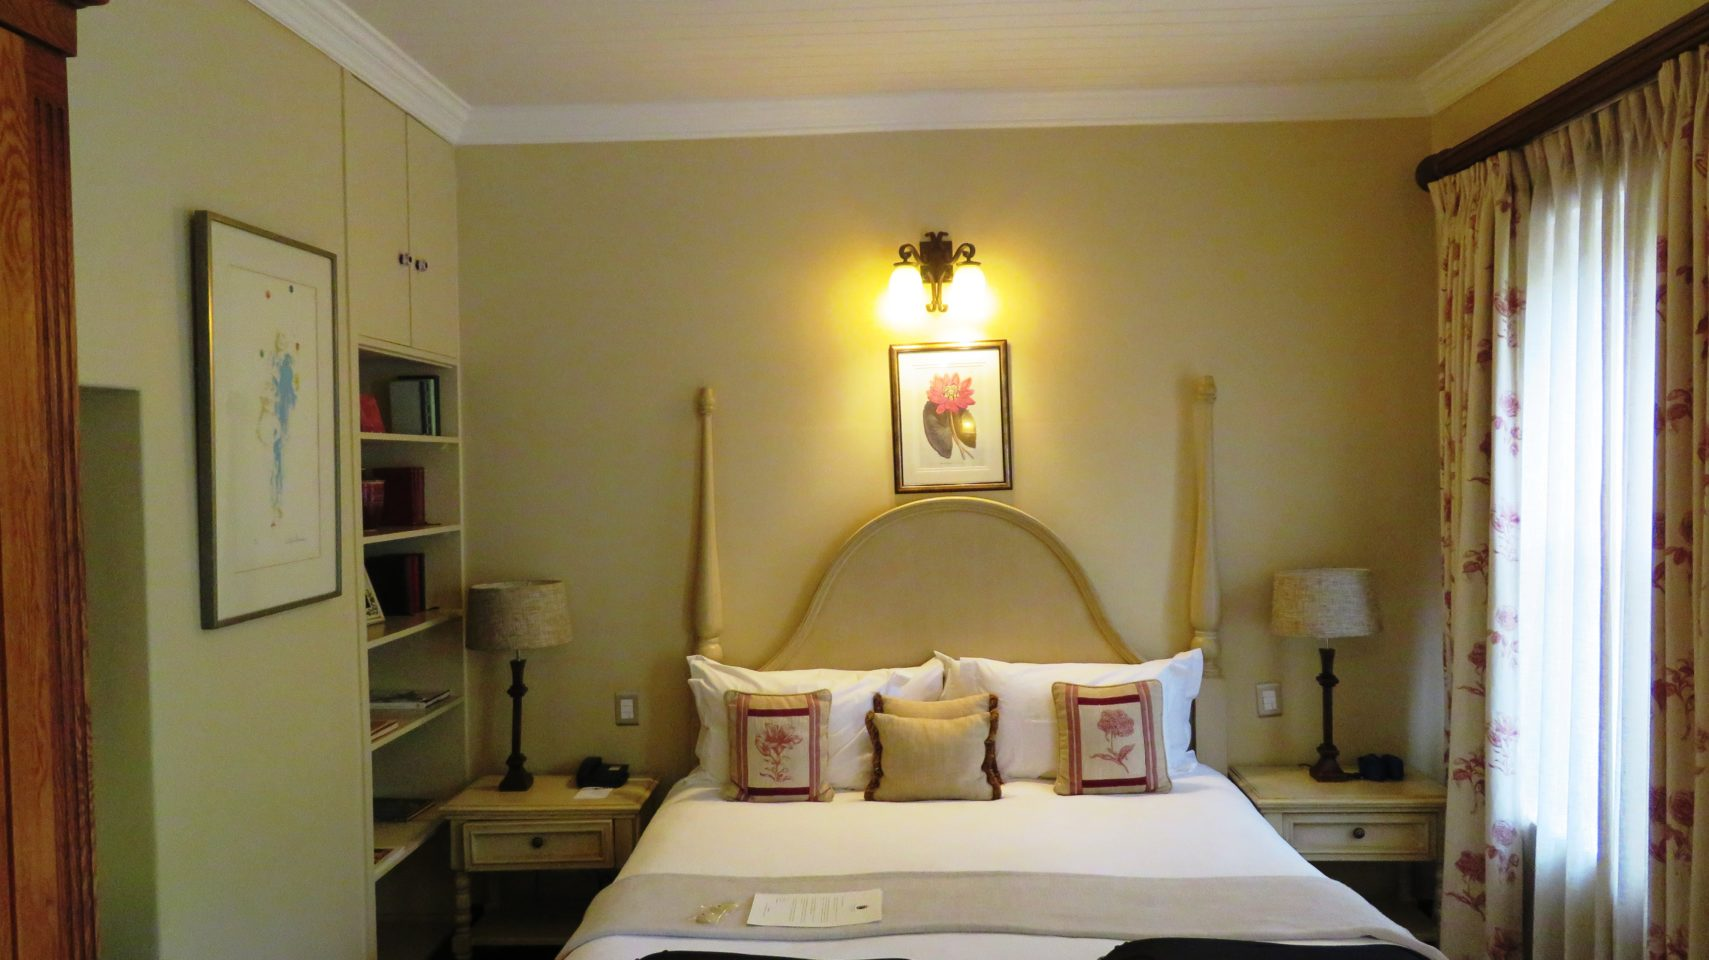 Our guestroom at the Coopmanhuijs Boutique Hotel & Spa